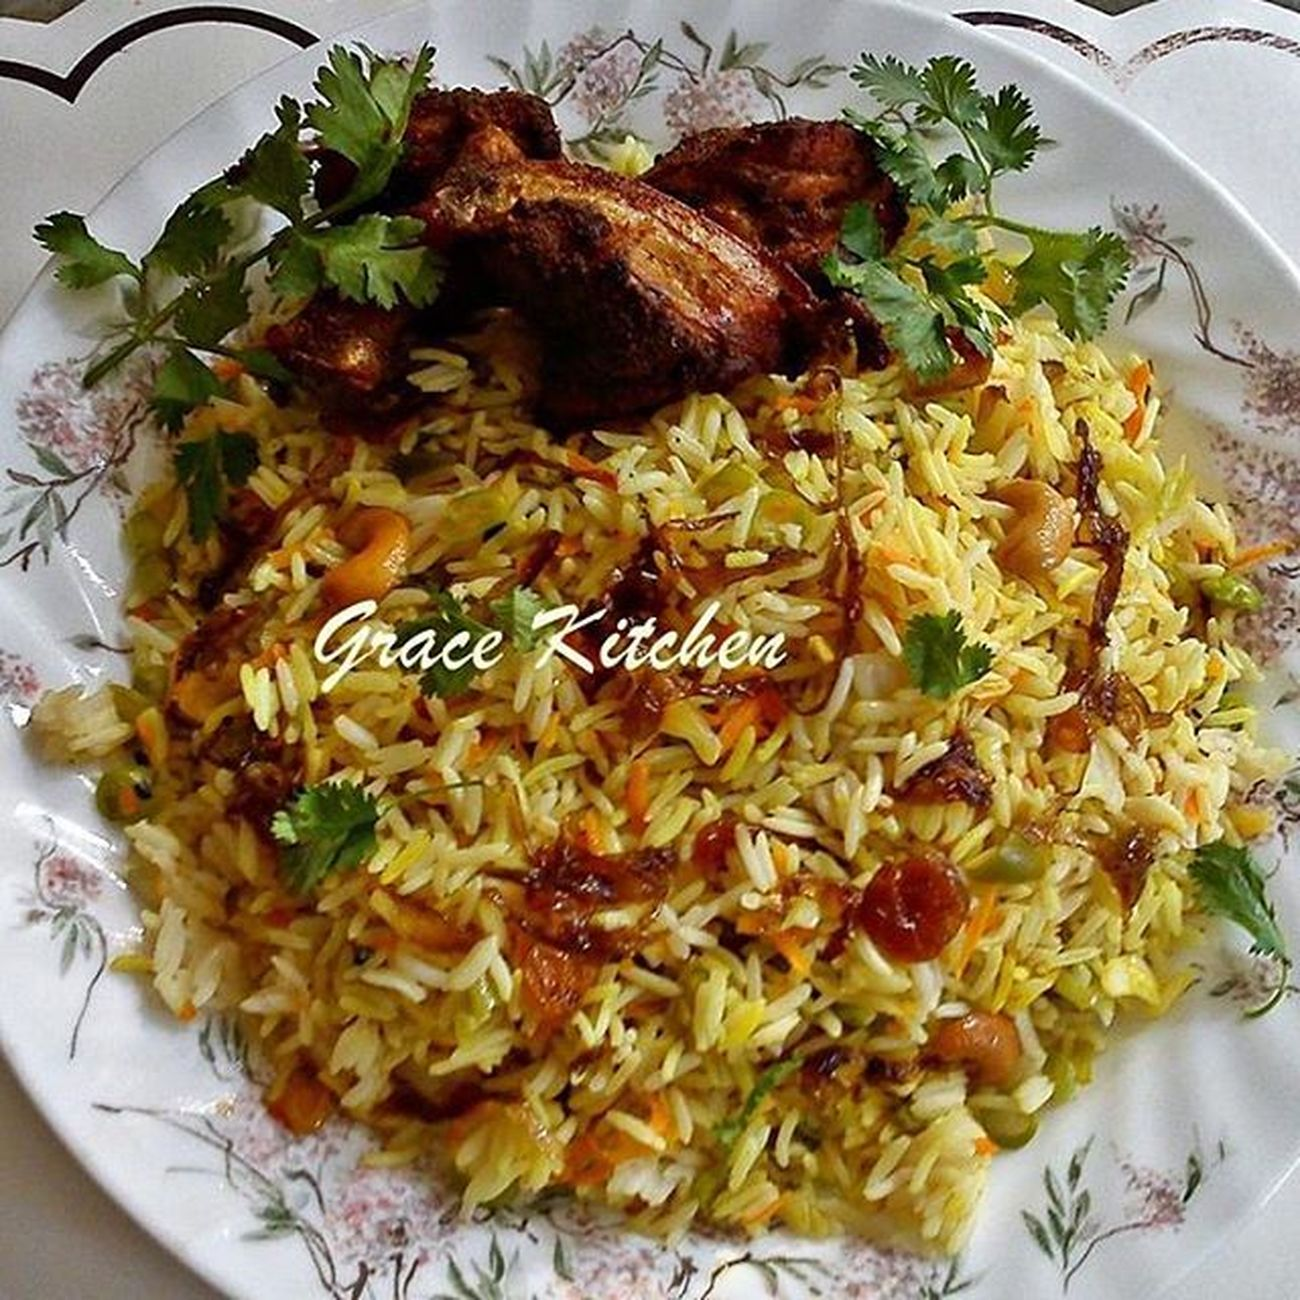 Grace Kitchen® Special Chicken Biriyani Biriyani Chickenbiriyani Gracekitchenktym Asishclicks Mobilephotography Foodies Foodphotography Foodporn Foodgasm Eats Eatthis Food Dish Awesome Tasty Delicious Maincourse Keralastyle Kerala Indianfood Kottayam Indianfood Foodie Chickendish Chickenfry friedchicken